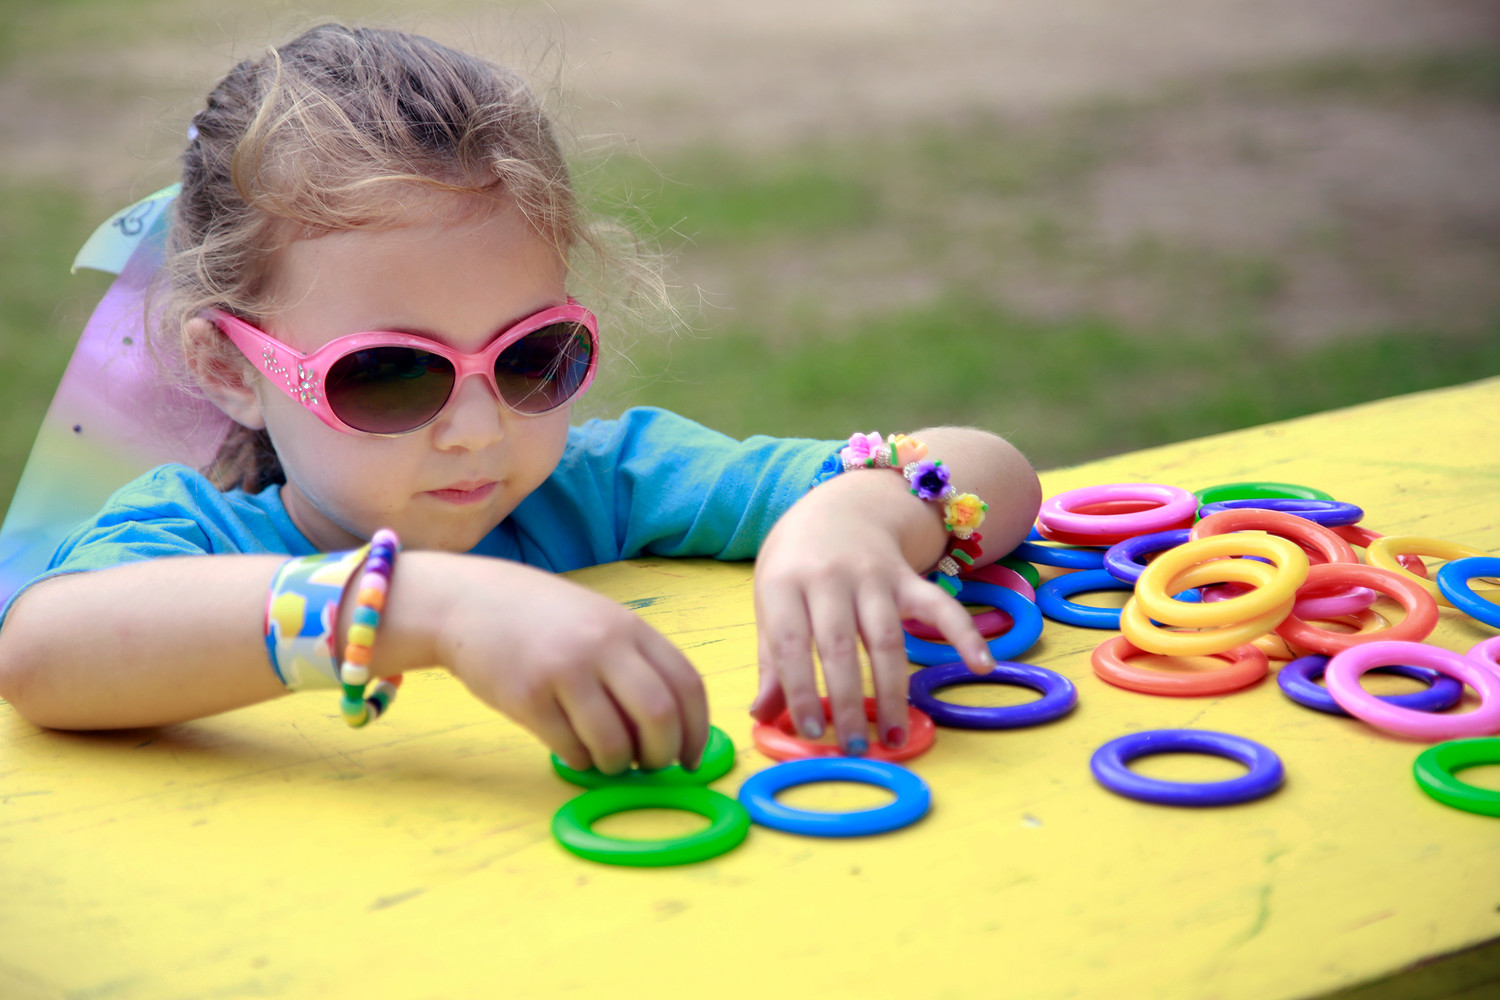 Payton Conklin, 6, helped her mother organize the rings for the ring toss game at the 49th annual Huckleberry Frolic last weekend.